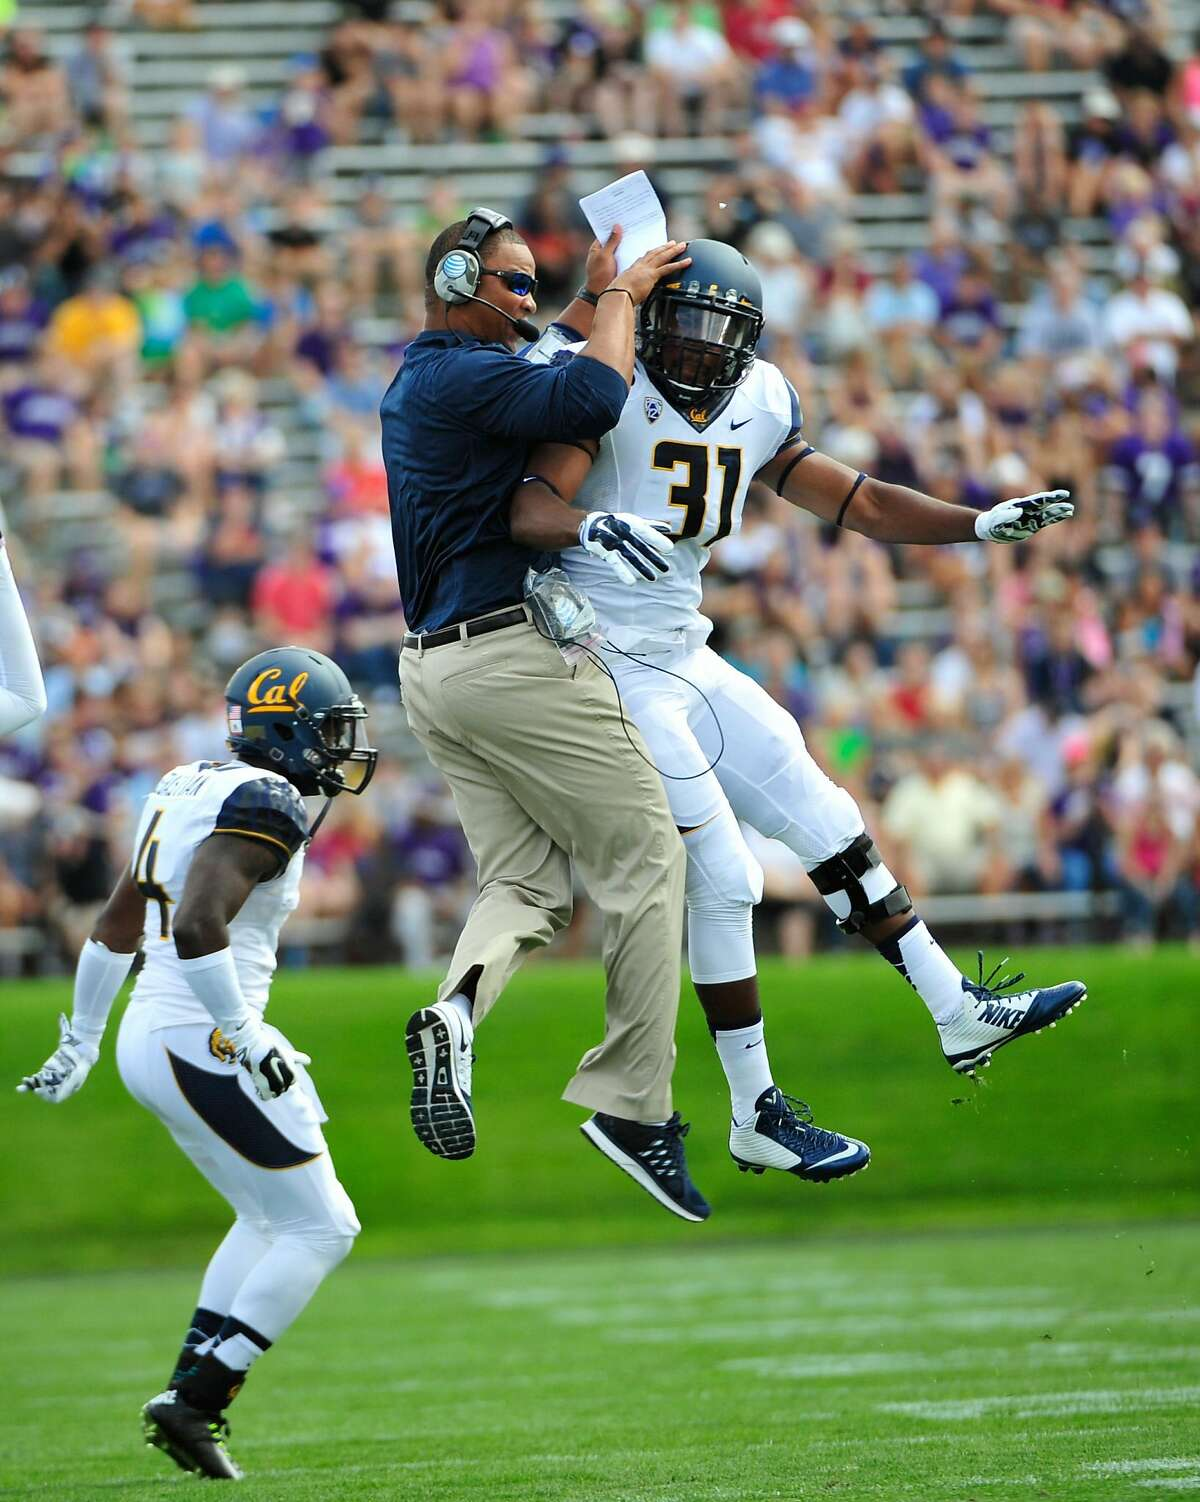 EVANSTON, IL- AUGUST 30: Raymond Davison #31 of the California Golden Bears celebrates a play with running backs coordinator Pierre Ingram during the first half in a game against the Northwestern Wildcats on August 30, 2014 at Ryan Field in Evanston, Illinois. (Photo by David Banks/Getty Images)